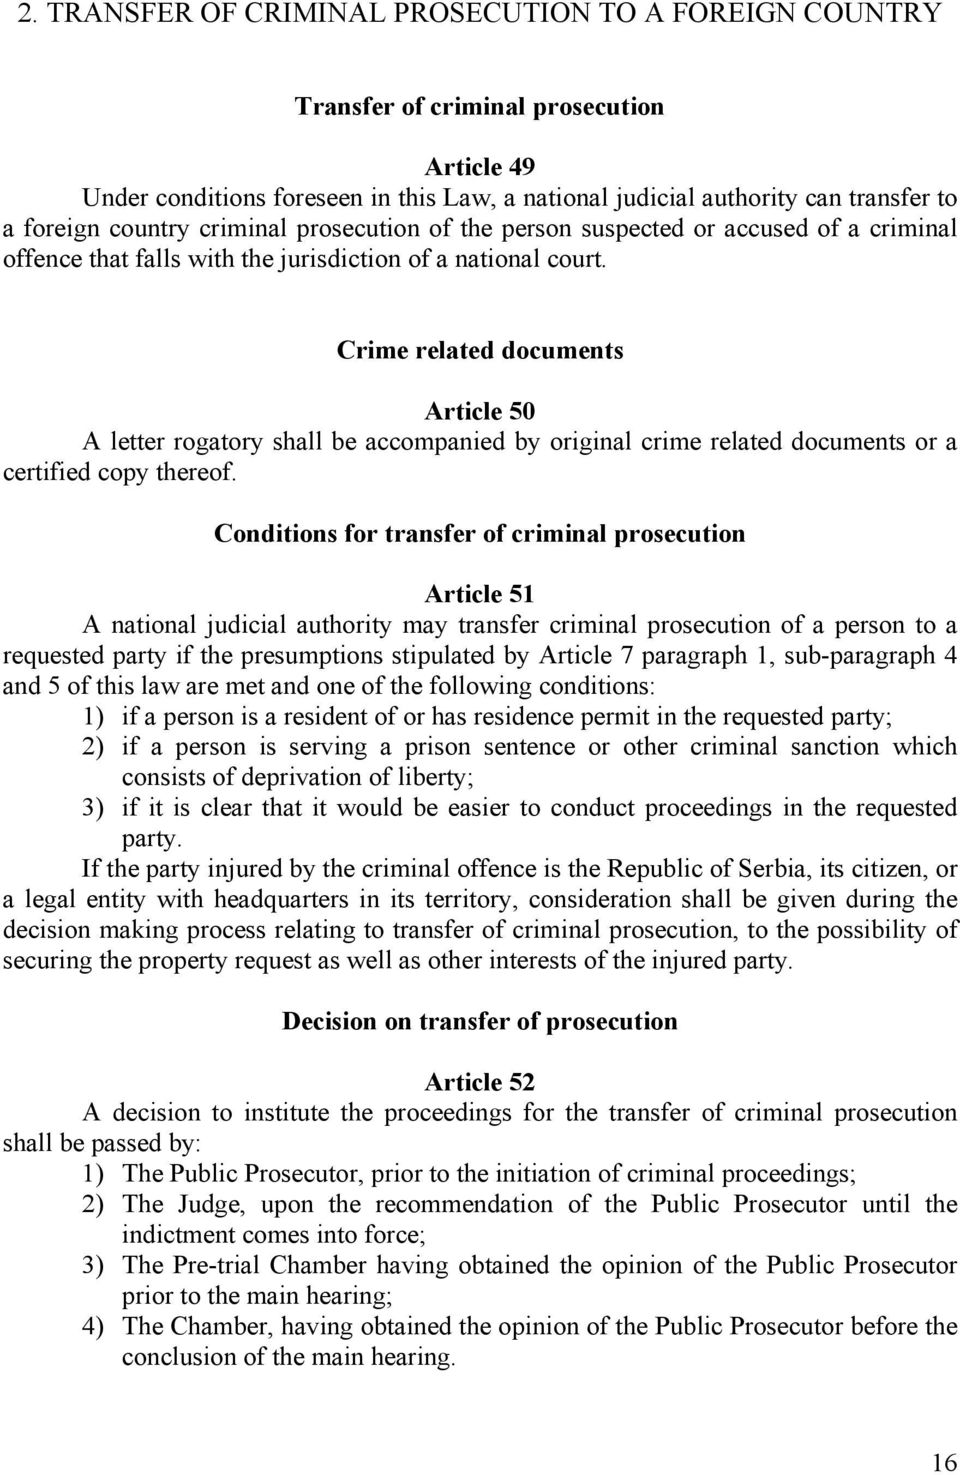 Crime related documents Article 50 A letter rogatory shall be accompanied by original crime related documents or a certified copy thereof.